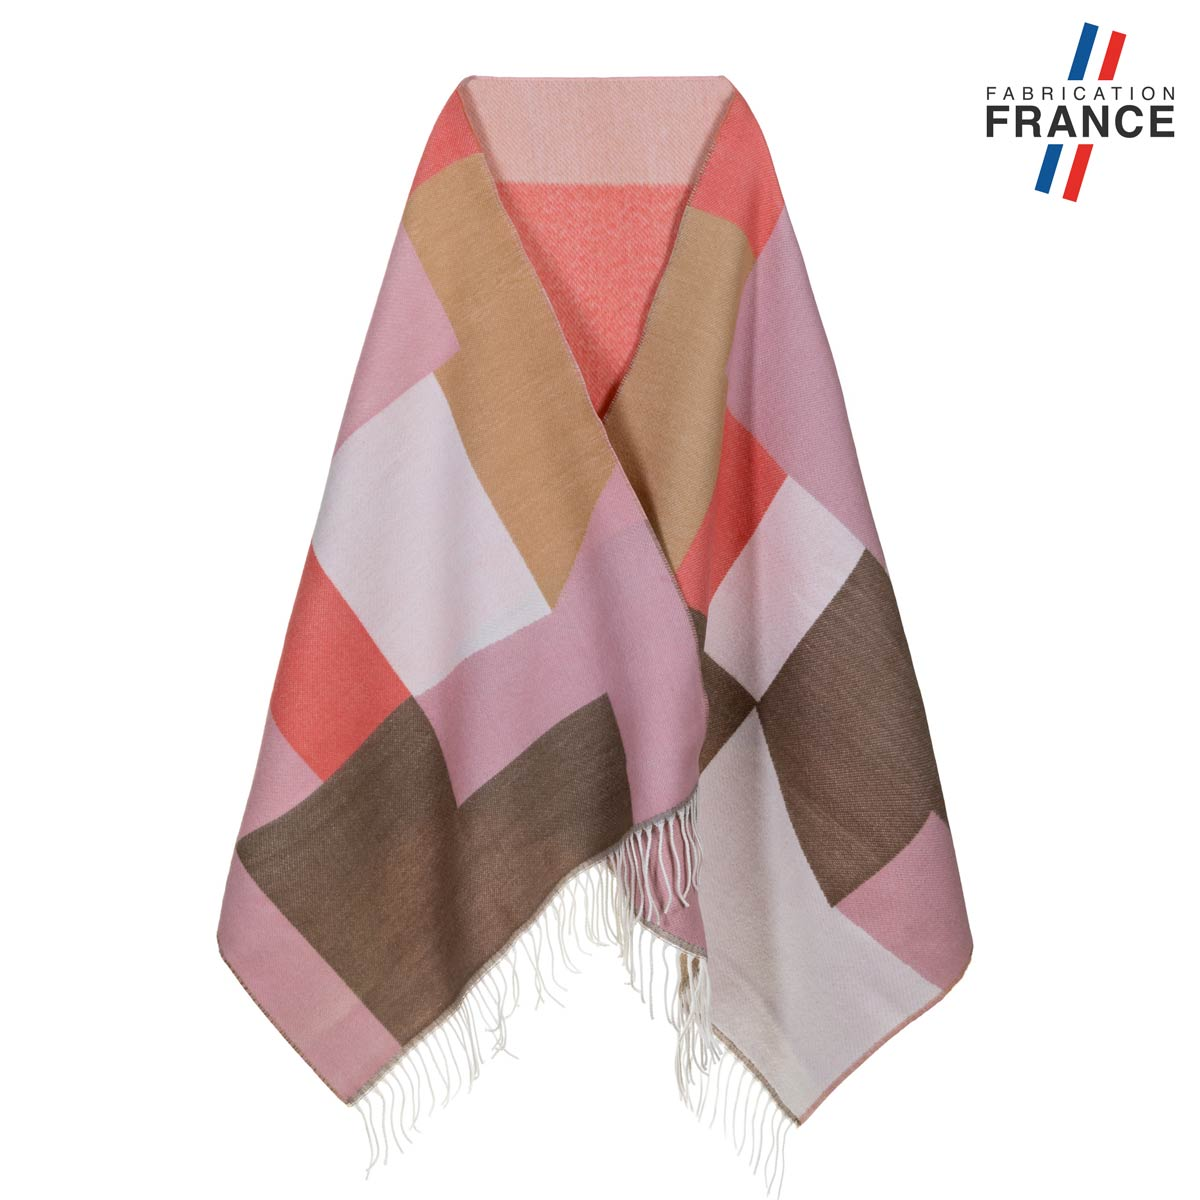 AT-05524_F12-1FR_Chale-femme-patchwork-taupe-rose